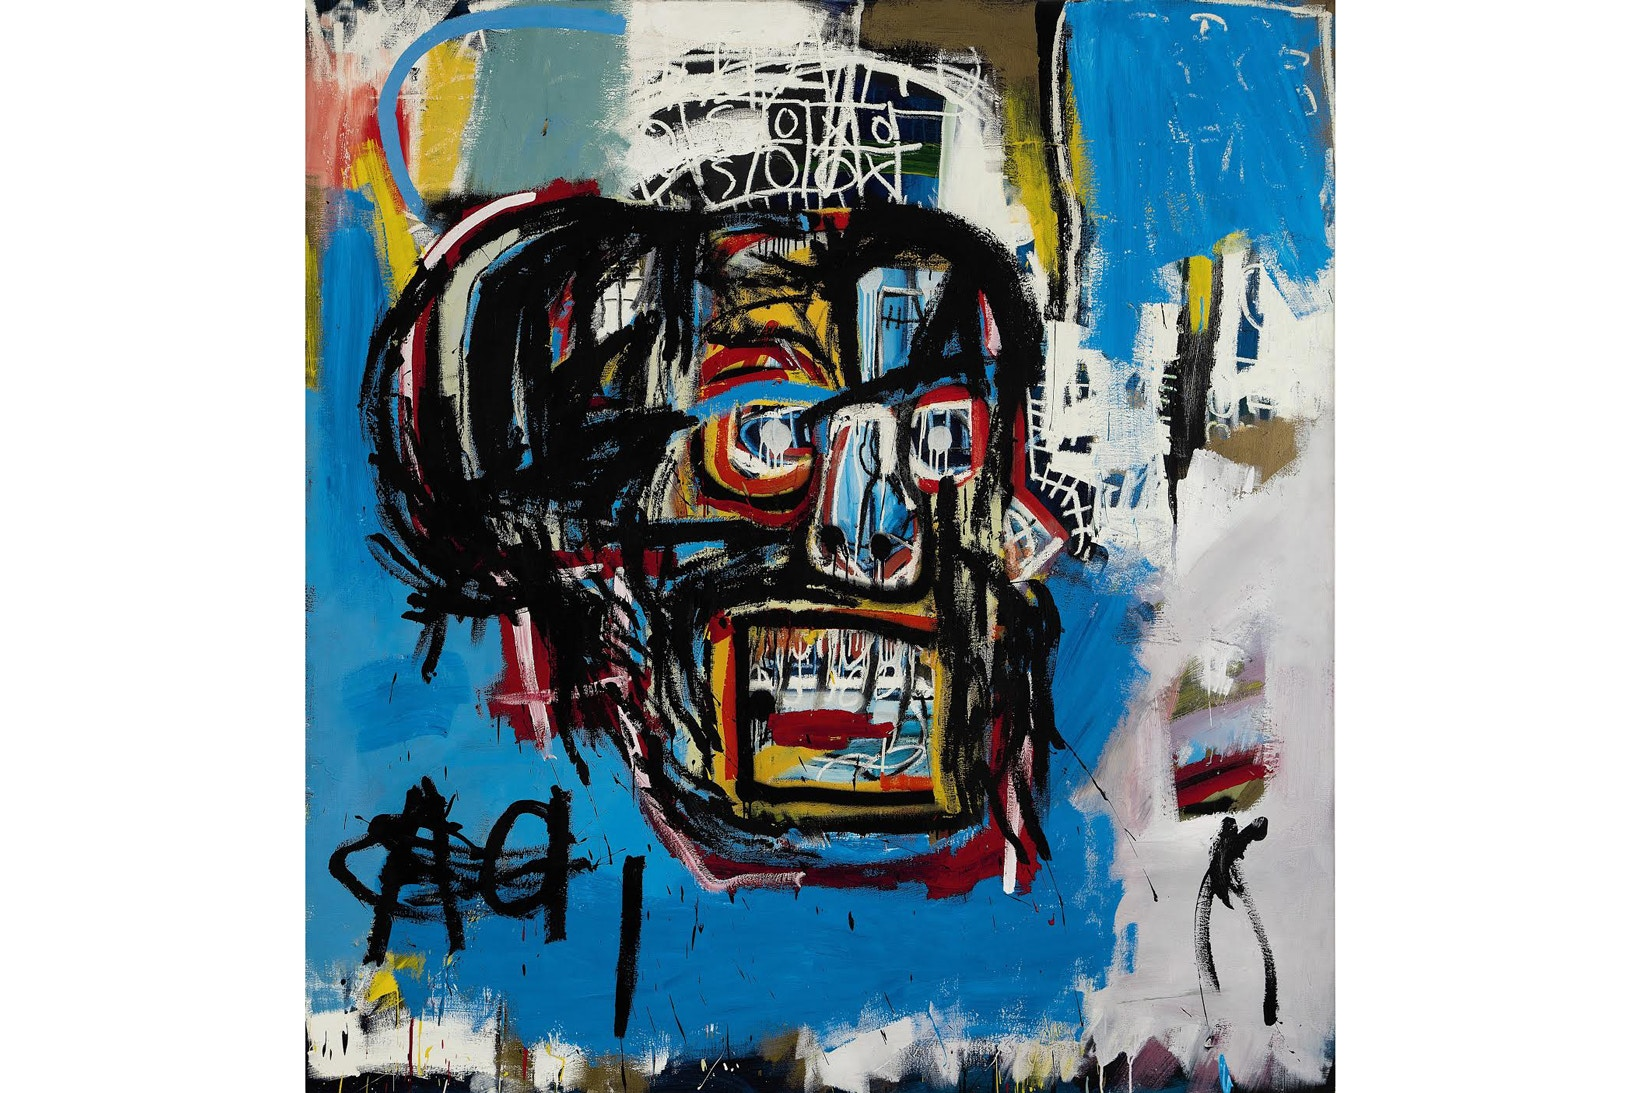 """Do you remember this piece that broke records last year? Maybe not, This Michel Jean Basquiat untitled art work sold for a record breaking 110 Million to private collector and fashion entrepreneur Yusaku Maezaw.This piece is set to make its way back to New York at the Brooklyn Museum for a special exhibit called """"One Basquiat"""" on display from anuary 26 through March 11, 2018.. Do you like Basquiat? Are you familiar with is work? leave a comment below let me know what you think"""